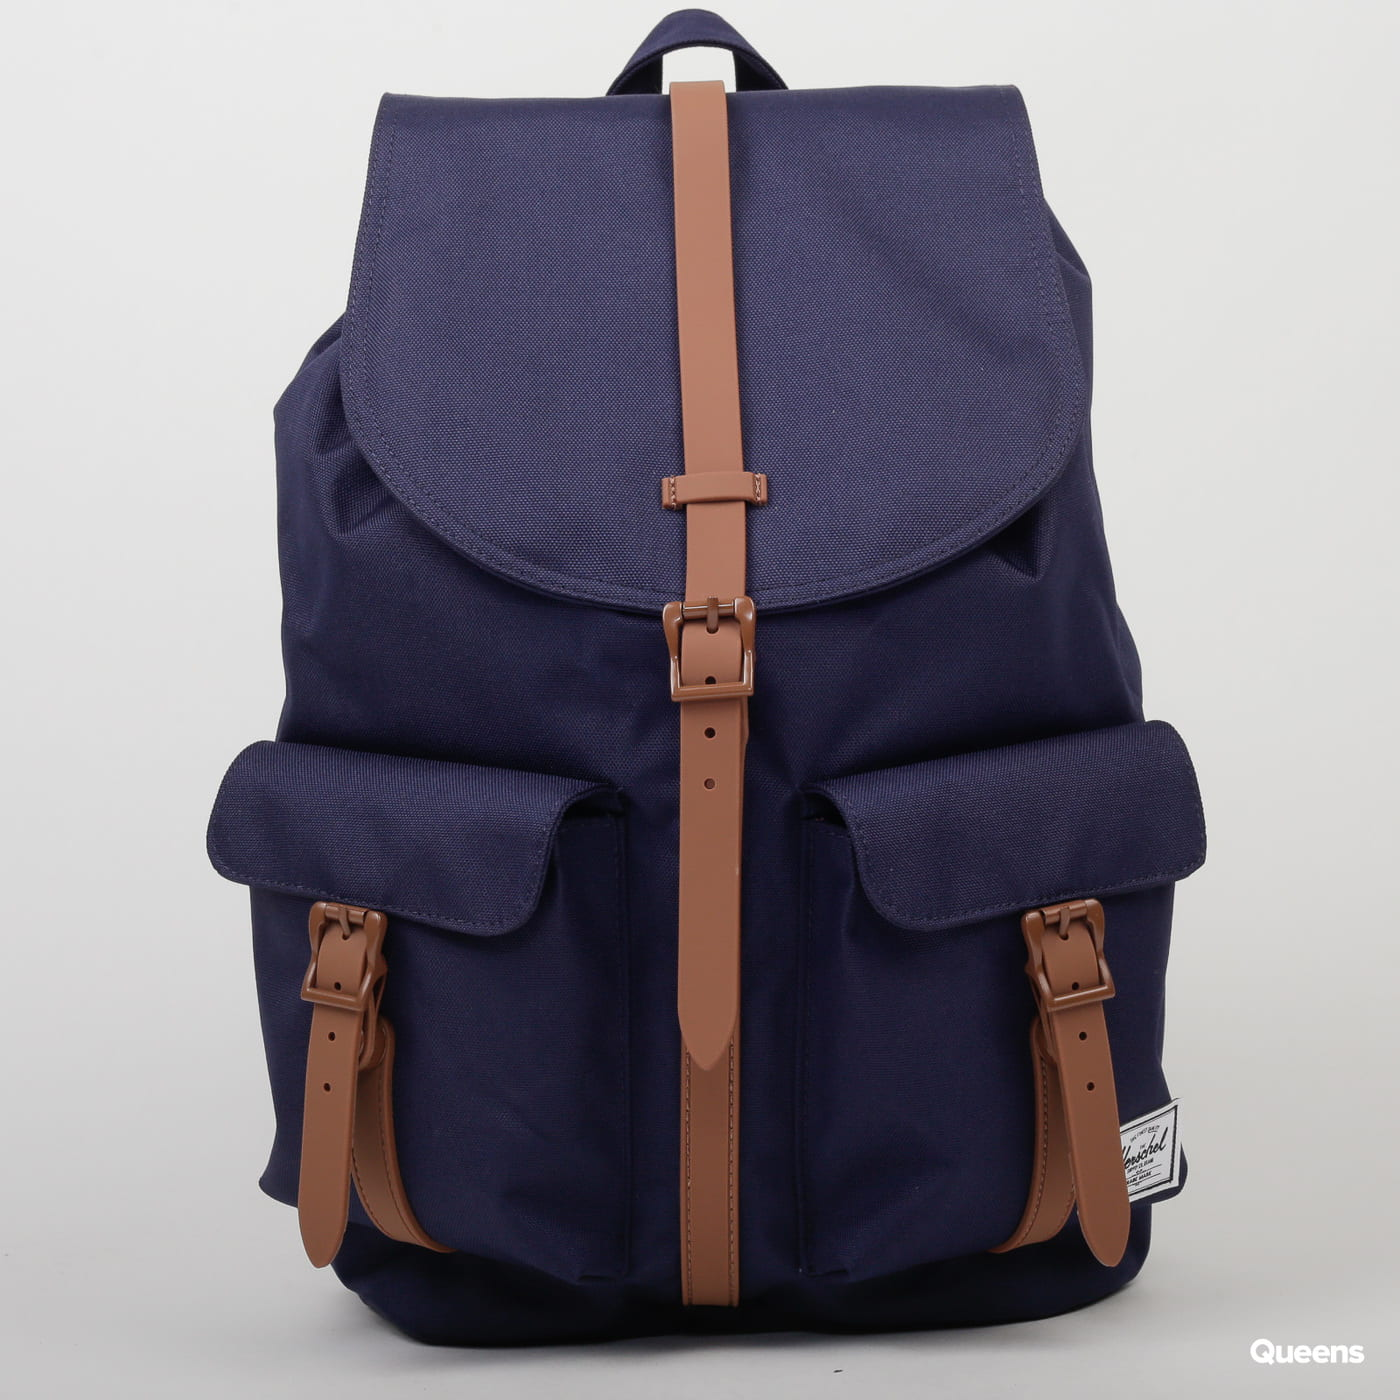 The Herschel Supply CO. Dawson Backpack navy / brown